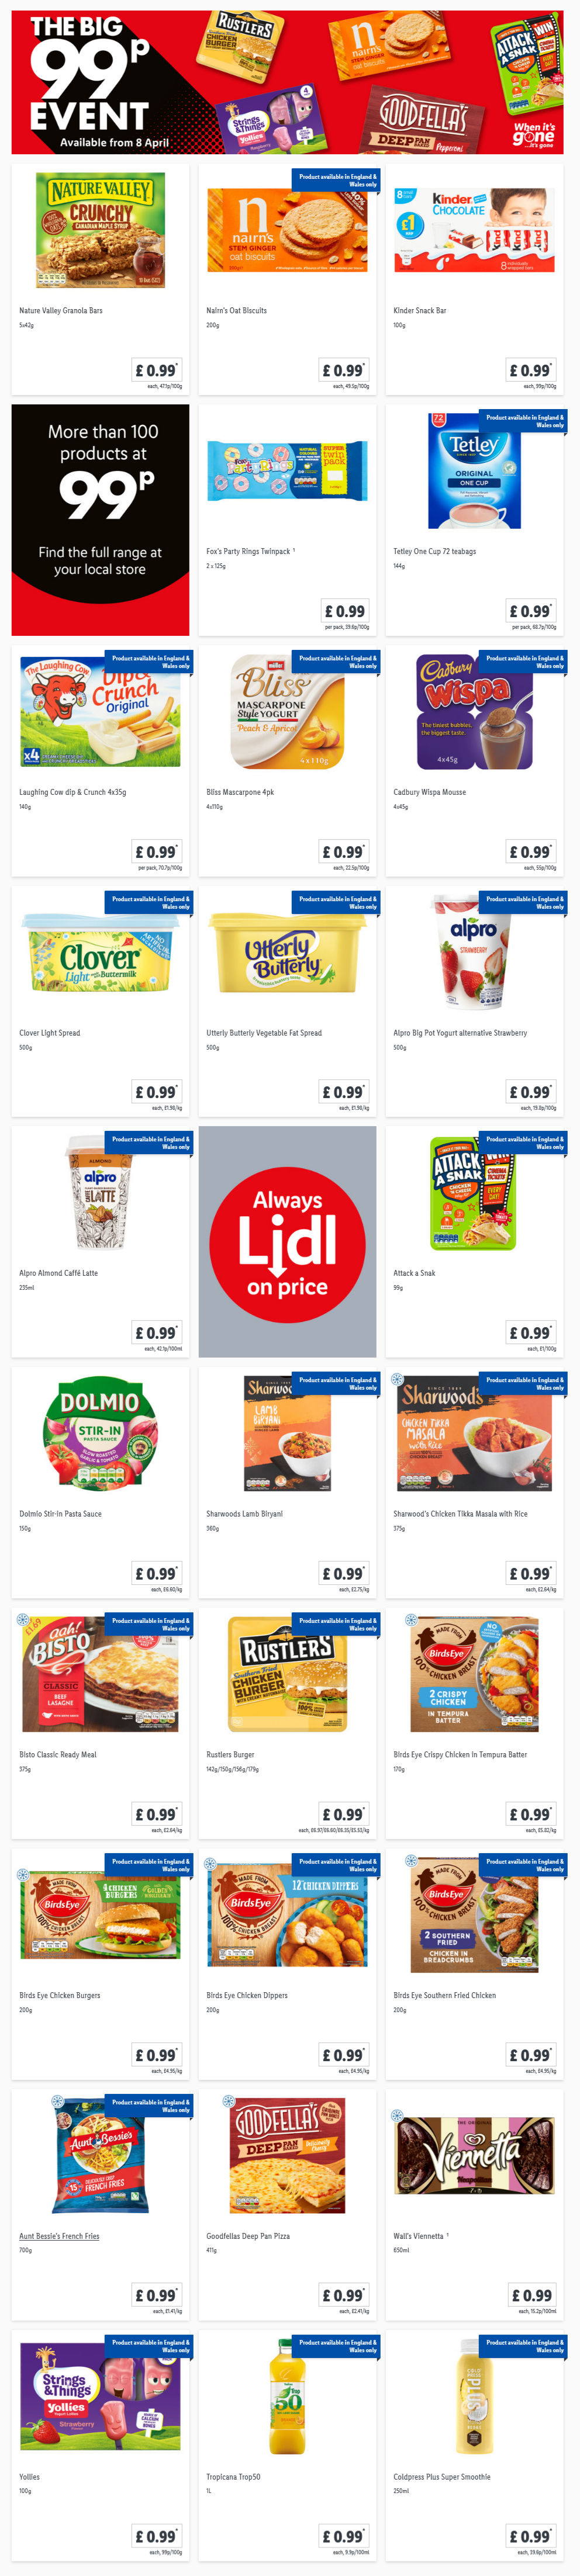 LiDL The Big 99p Event From 8th April 2021 LIDL Offers this Thursday